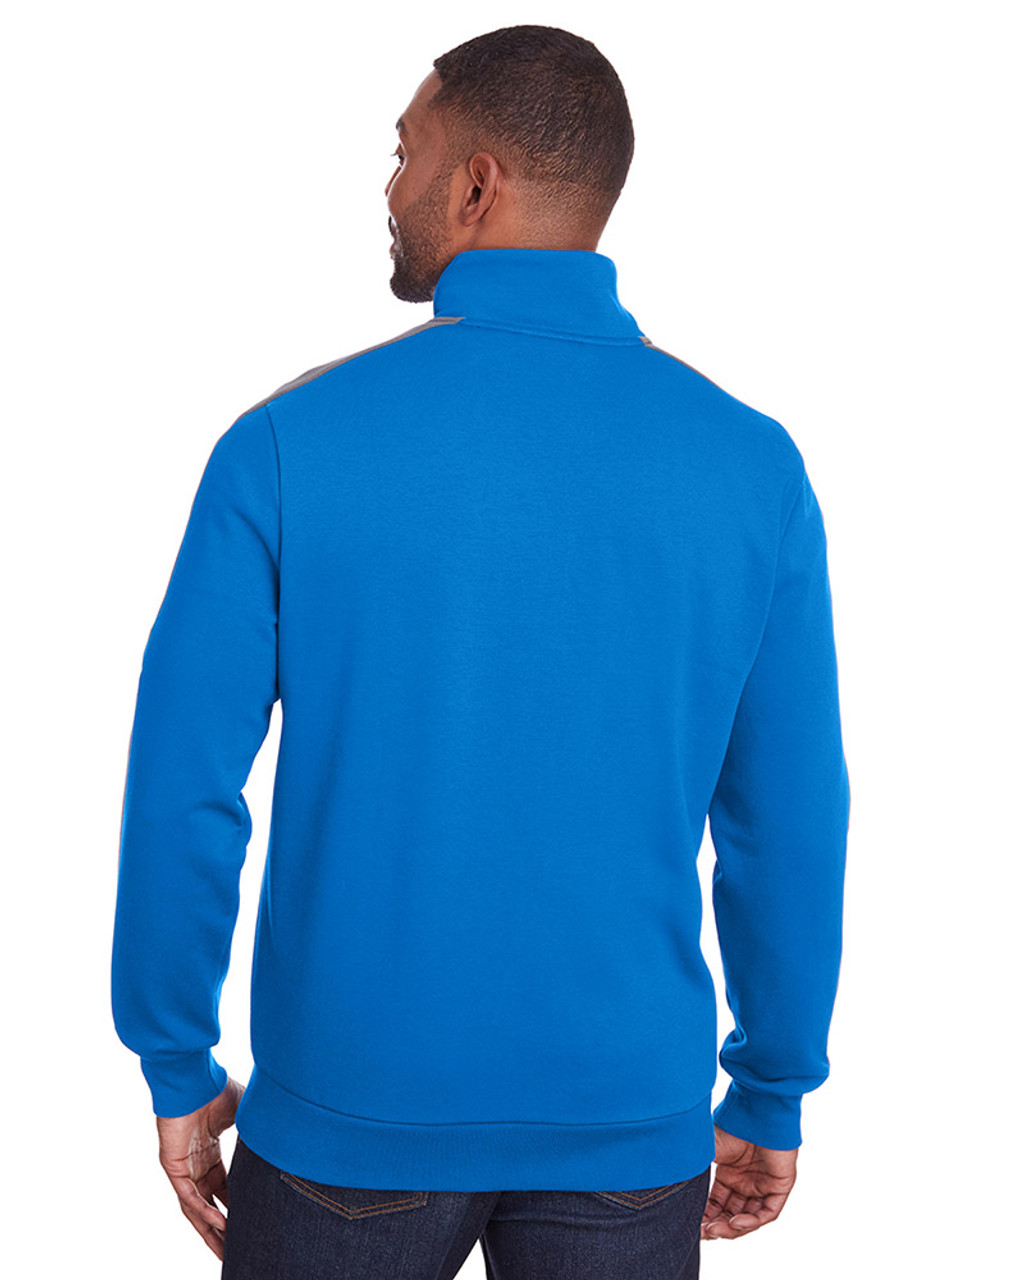 Lapis Blue/Quiet Shade - back, 597021 Puma Sport Adult P48 Fleece Track Jacket | Blankclothing.ca